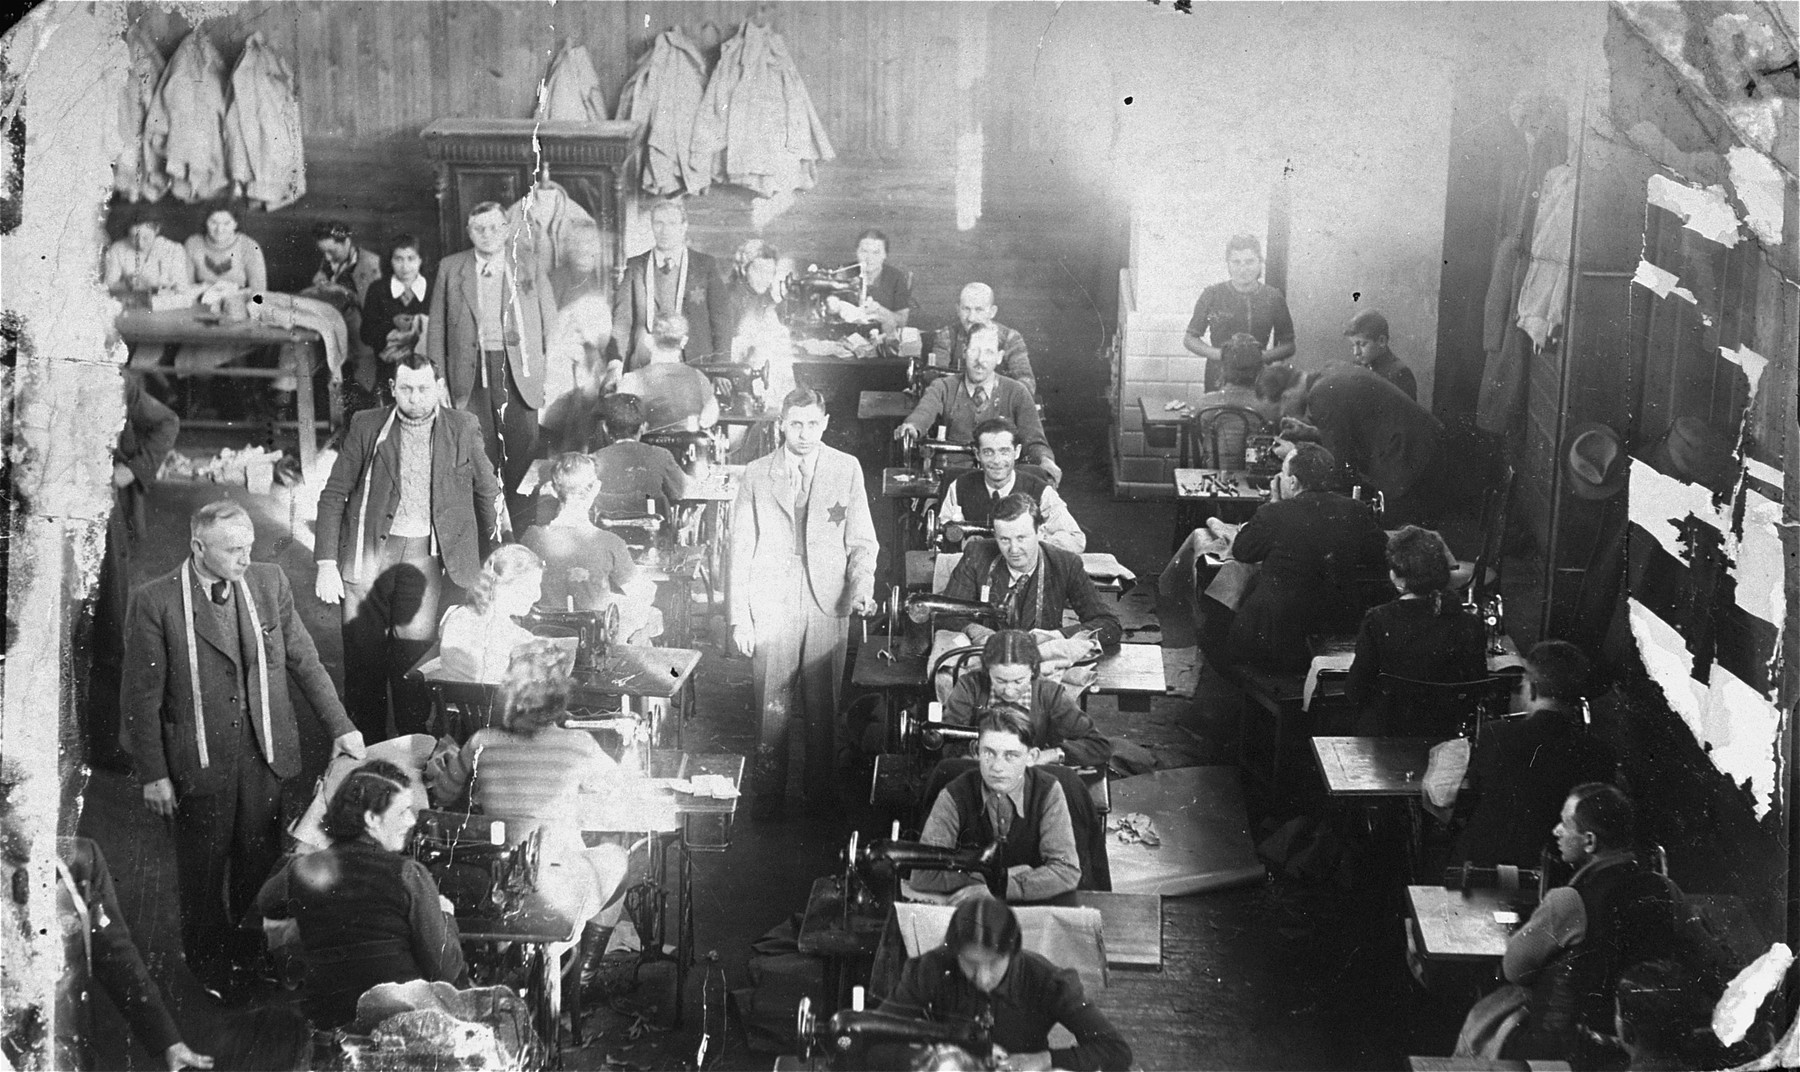 Jews at forced labor sewing military uniforms for the German army and air force at a factory in the Olkusz ghetto.  Among those pictured are the tailor Gliksztajn (standing on the left, with a measuring tape around his neck), Salka Szwarcberg (sitting next to Gliksztajn at one of the sewing machines), Chana Zuckerman (seated third from the front, in the middle row),  and Wof Cygler (later Walter Ziegler, seated at the back on the far right).